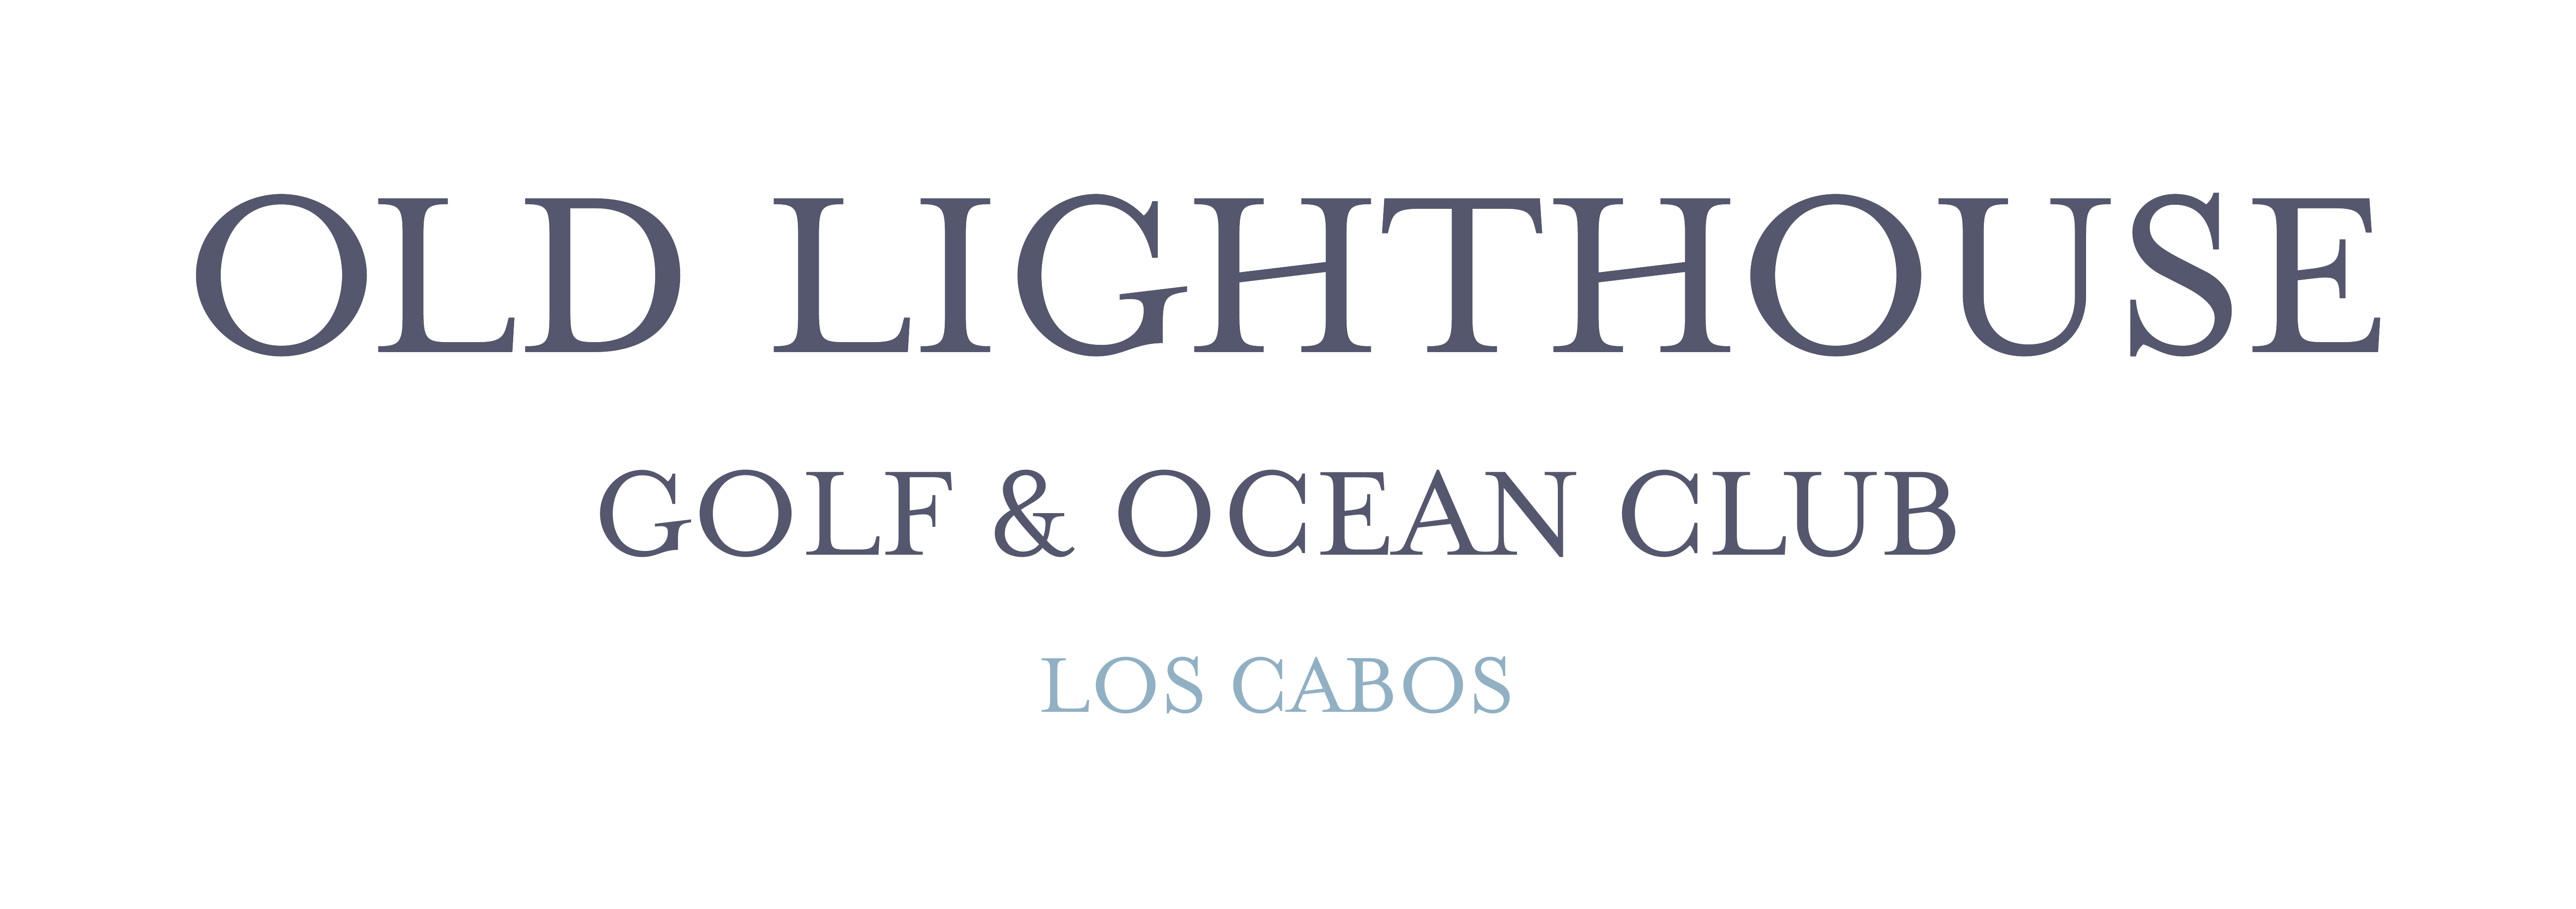 Old Lighthouse Golf and Ocean Club